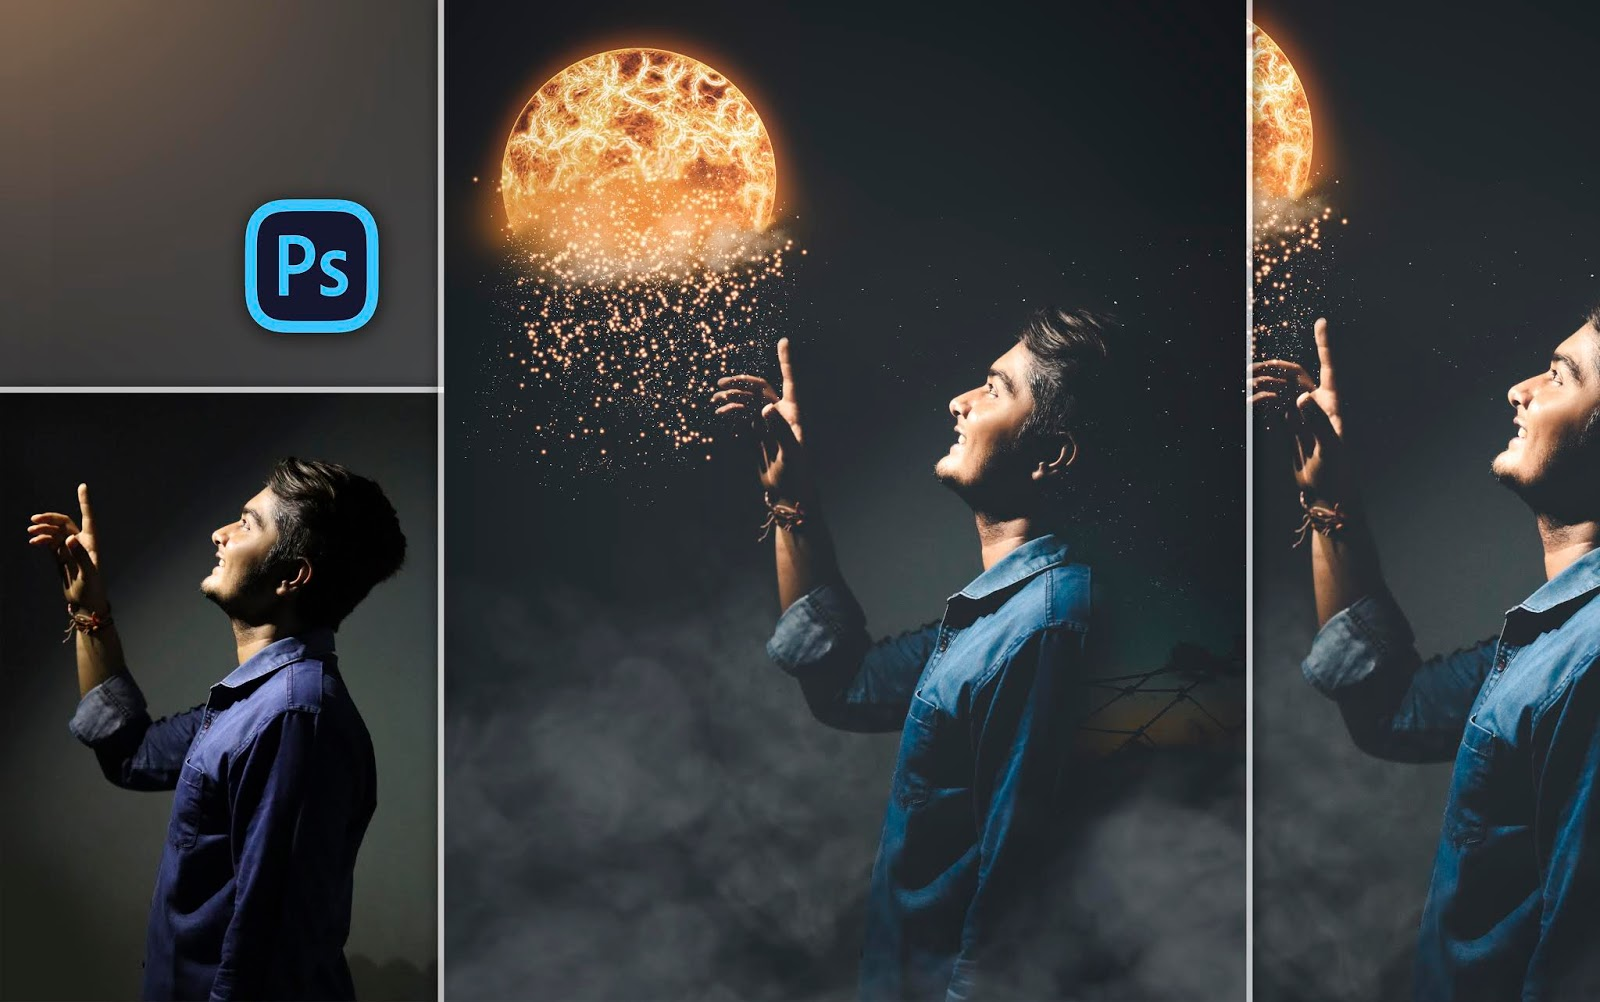 Calop Style Visual Photo Editing | Man Touching Burning Sun | Visual Art Photo Manipulation in Photoshop